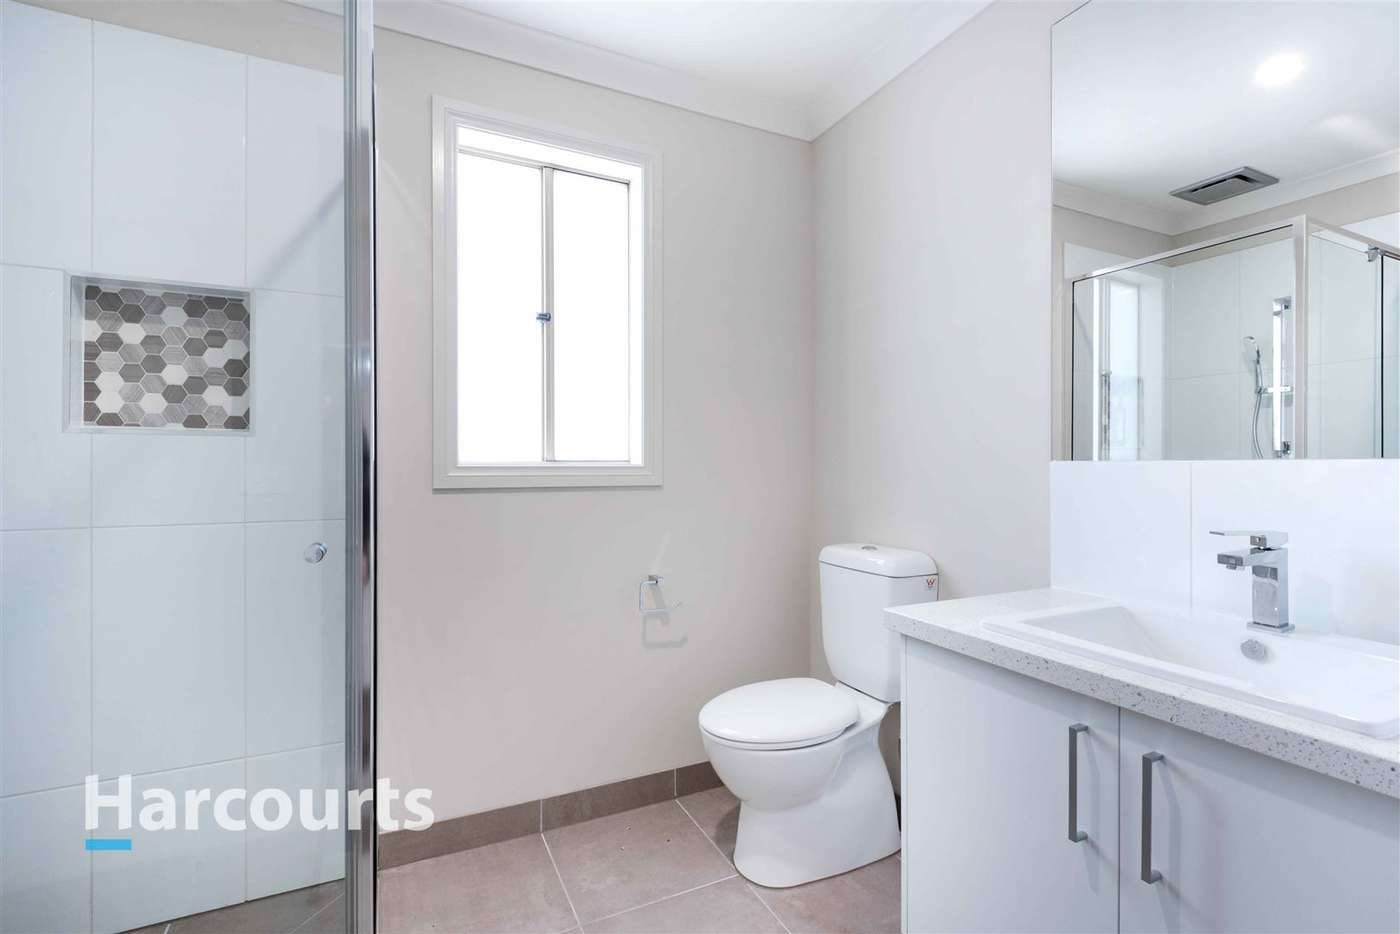 Sixth view of Homely house listing, 36 Australorp Drive, Clyde North VIC 3978